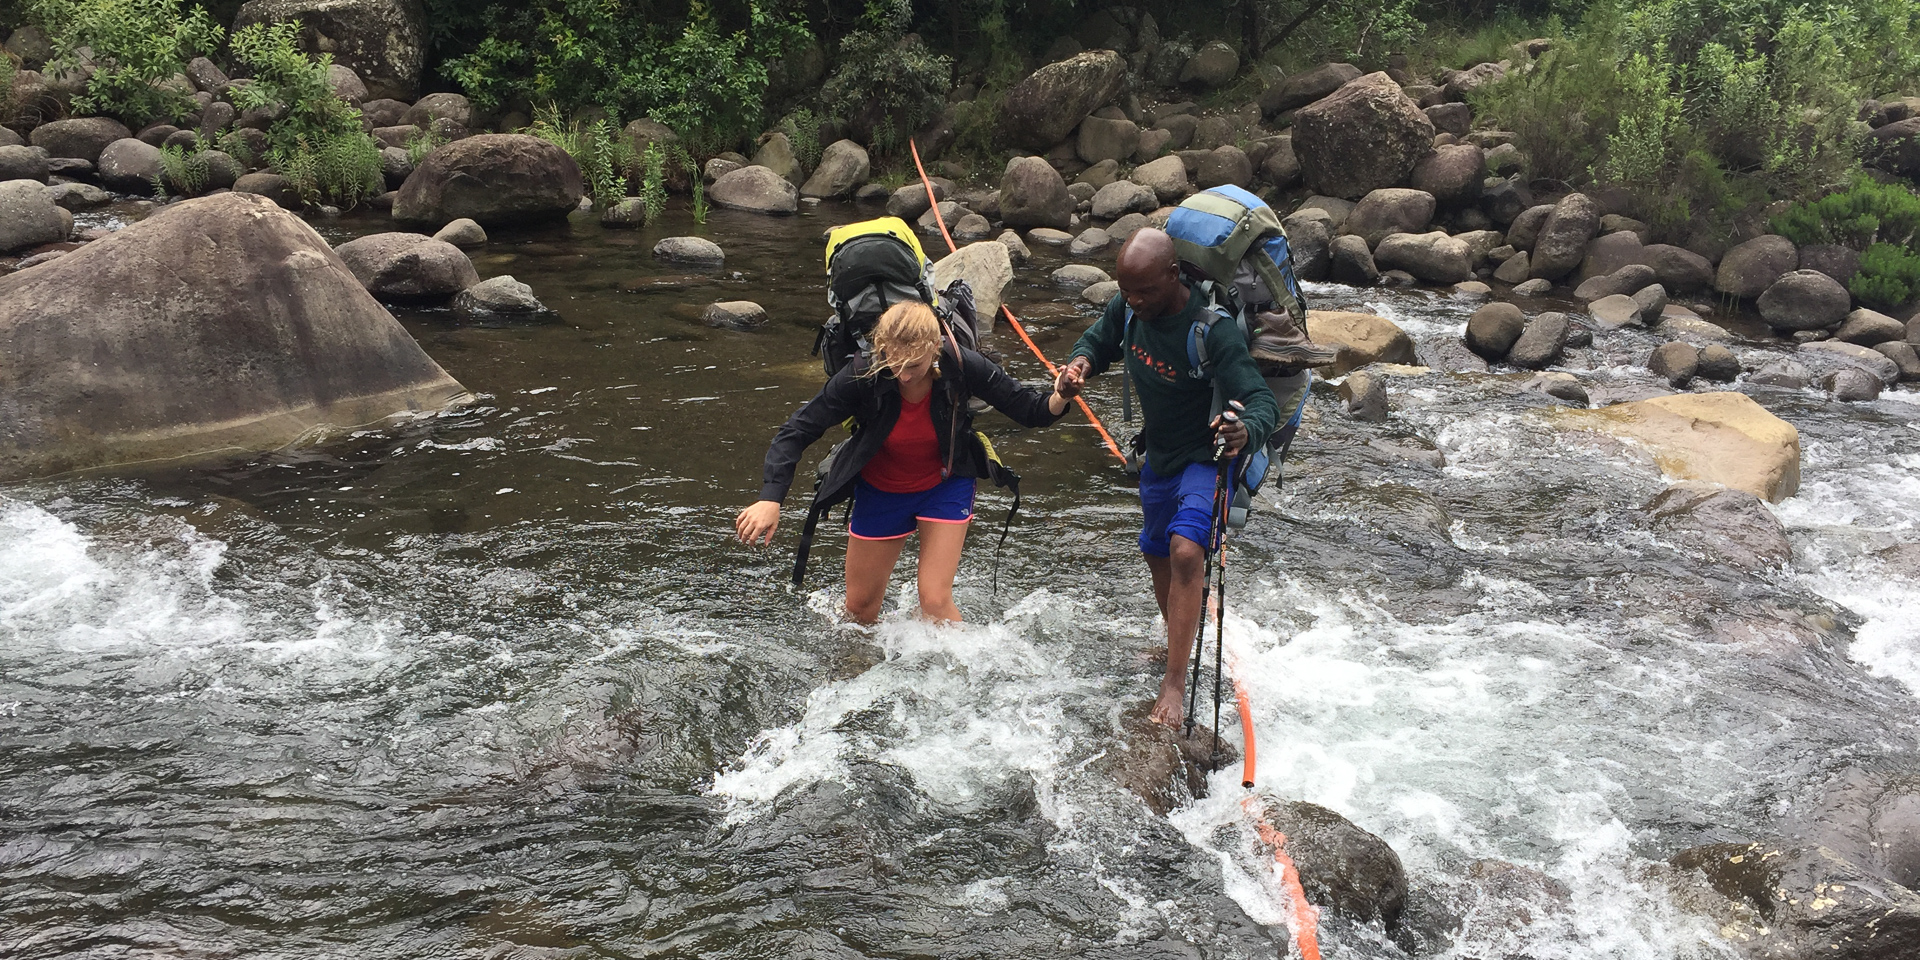 Jeffrey giving Milly a helping hand across the first and only river crossing of the trip. The boulders and fast current made it surprisingly tricky underfoot. After rain this would soon become impassible.